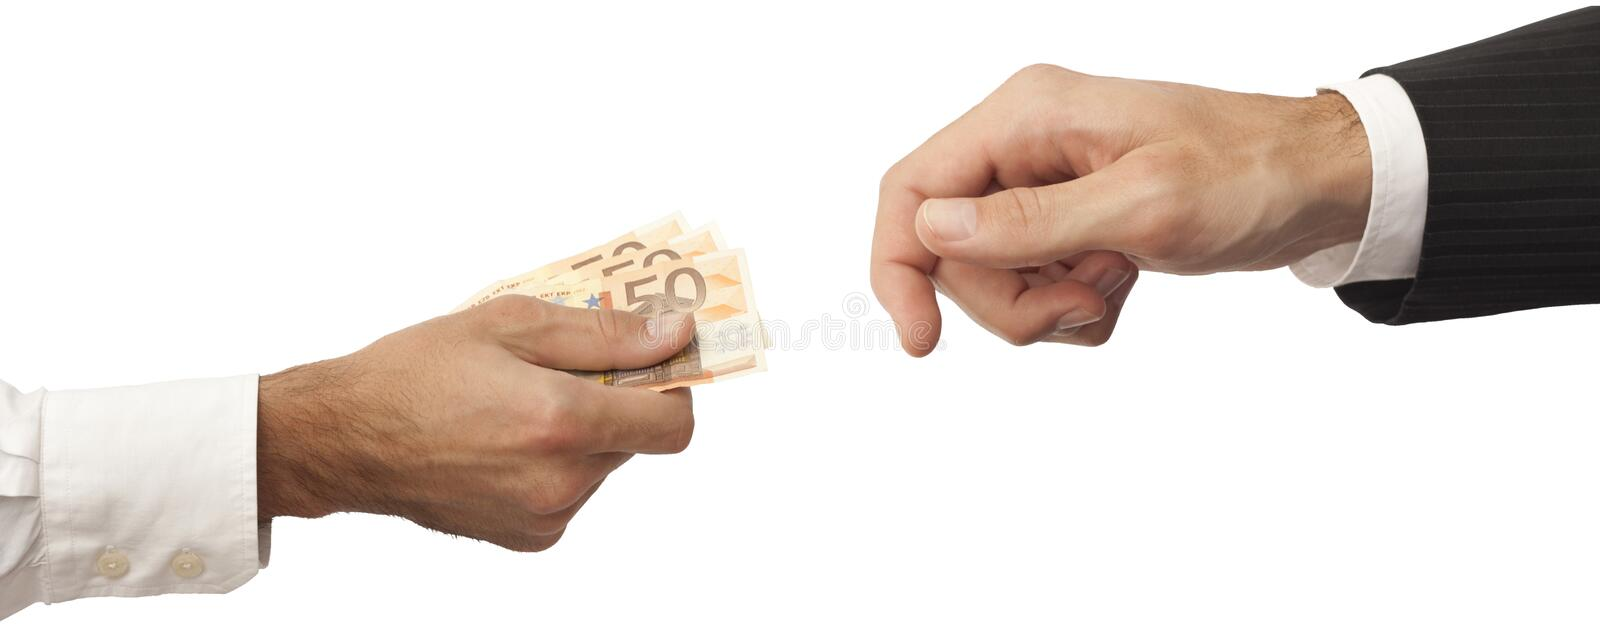 Creation Of The Business World Stock Image